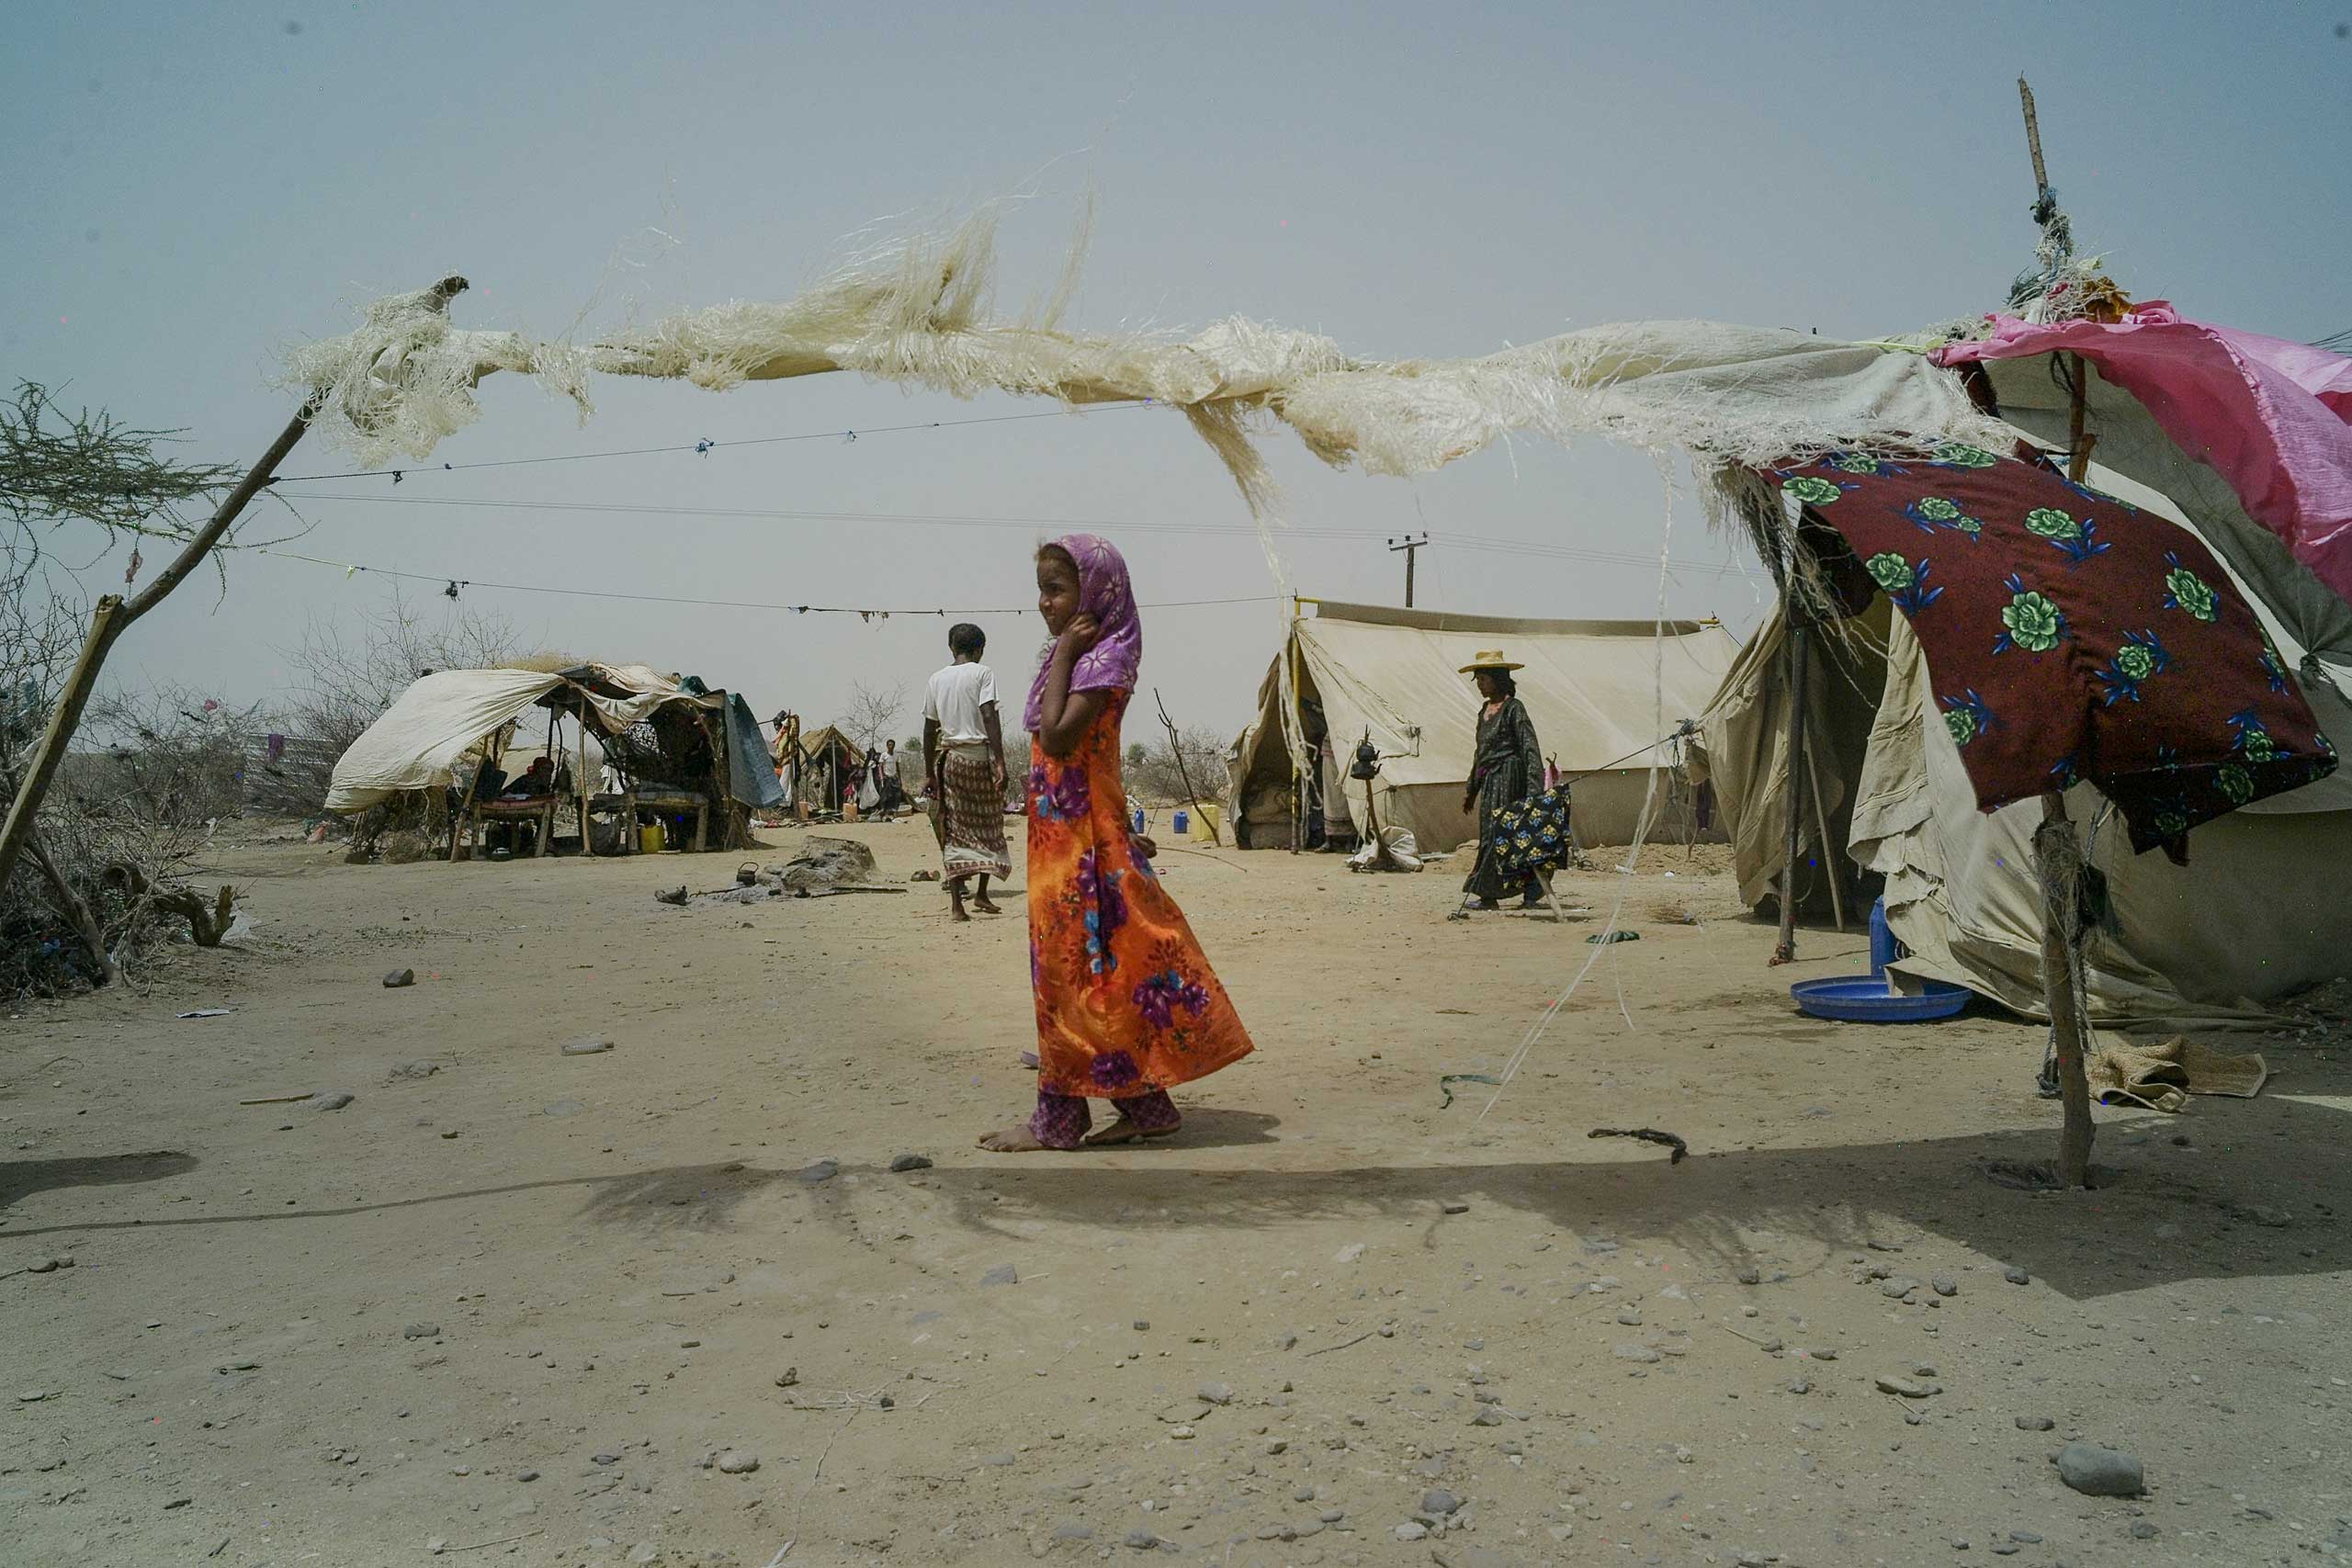 A young girl at the Al Majoura camp for displaced people in northern Yemen which is undergoing a severe food and humanitarian crisis since airstrikes began in the Spring, Aug. 2015.